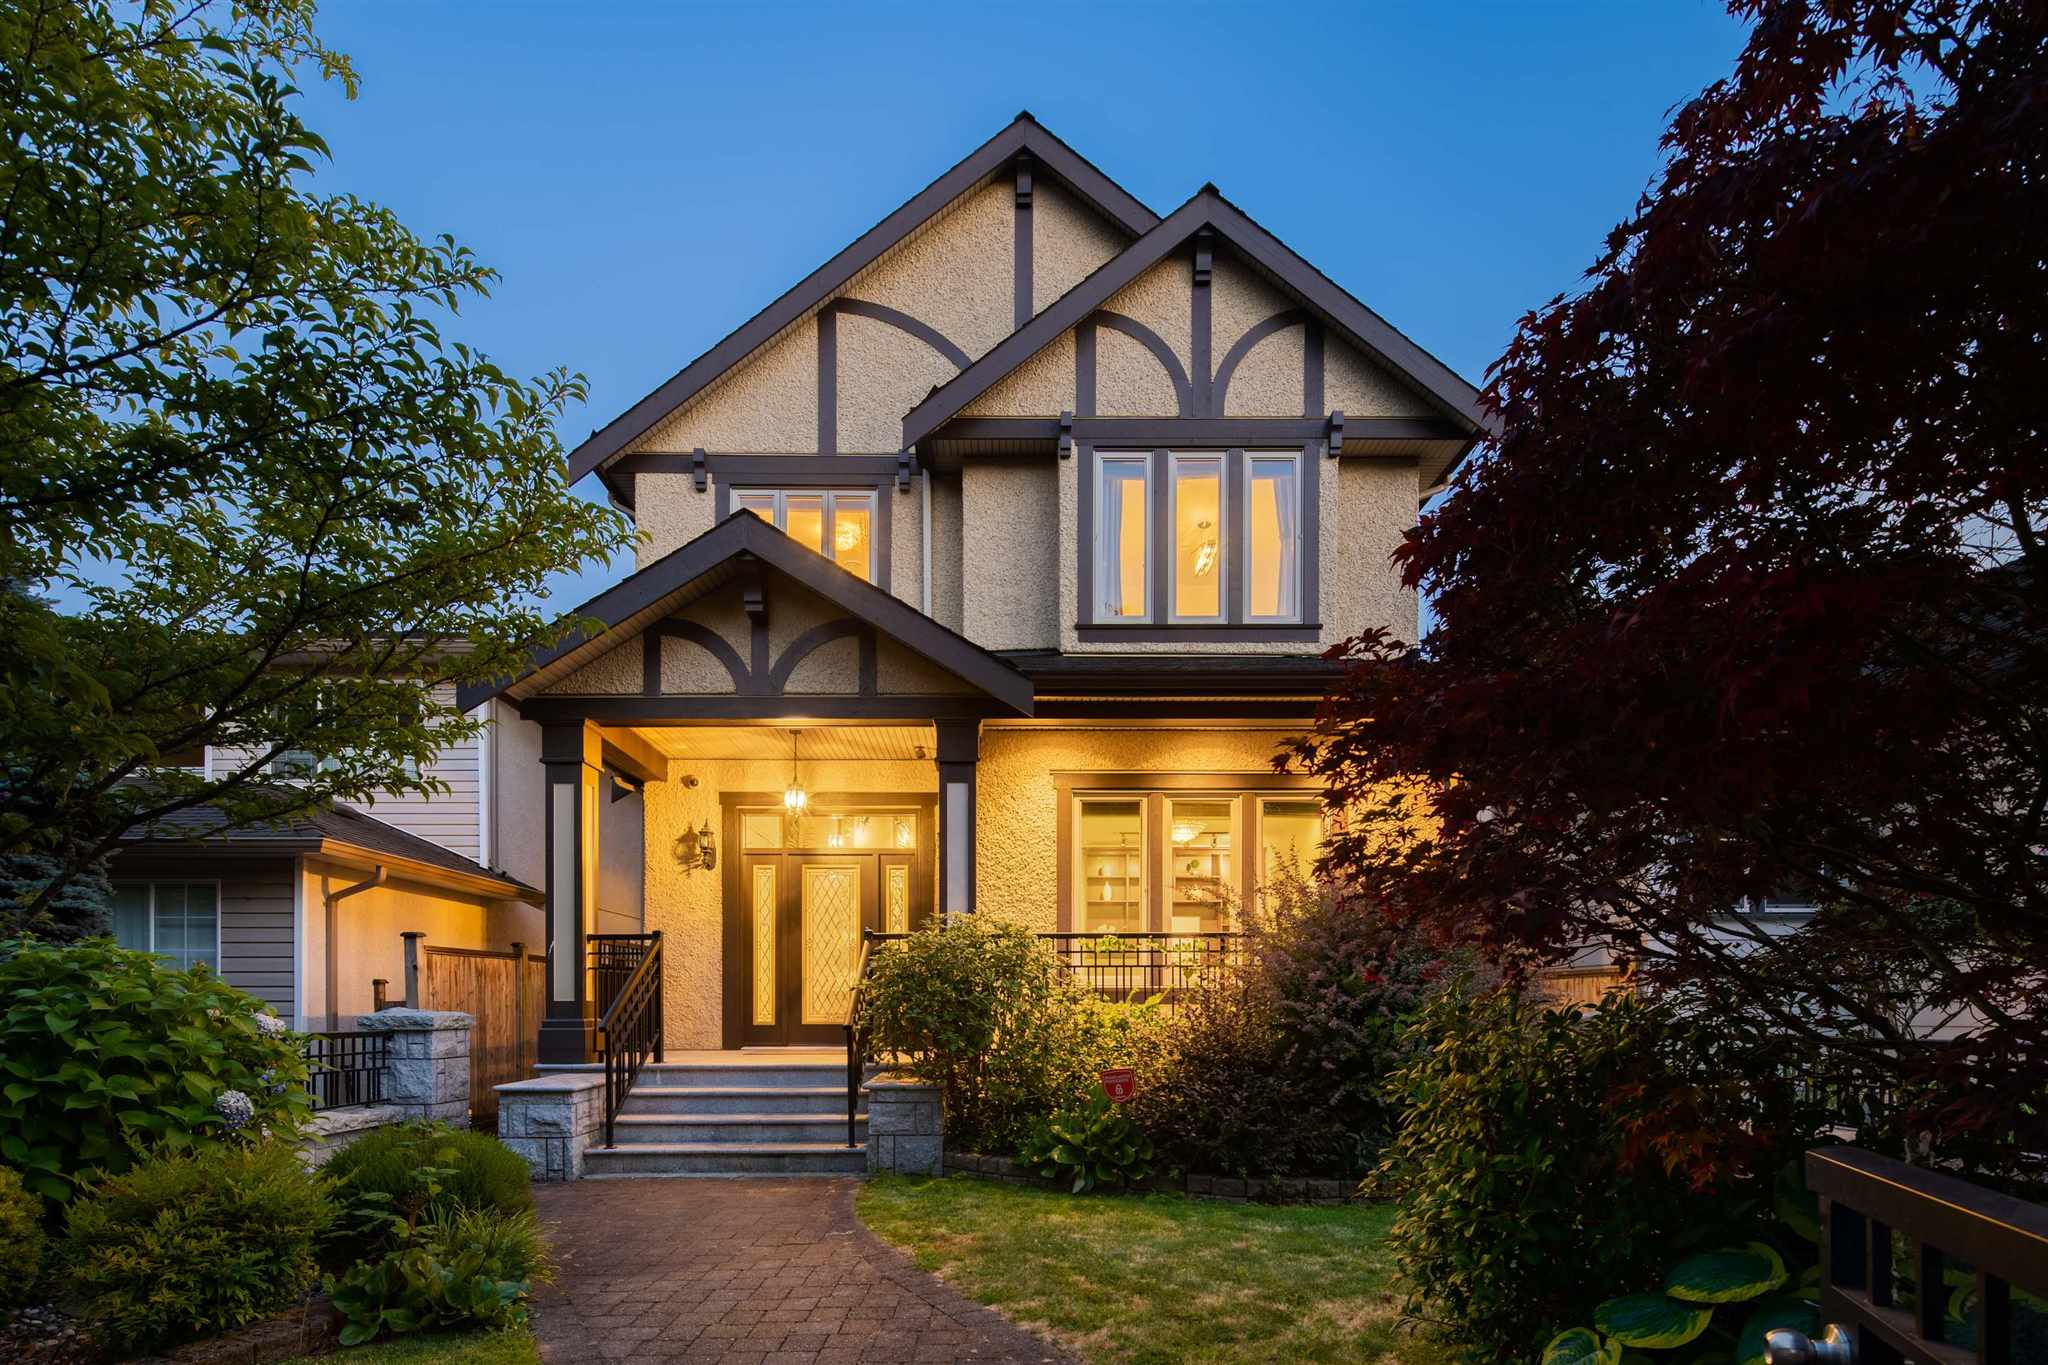 2036 W 44TH AVENUE - Kerrisdale House/Single Family for sale, 5 Bedrooms (R2622379)